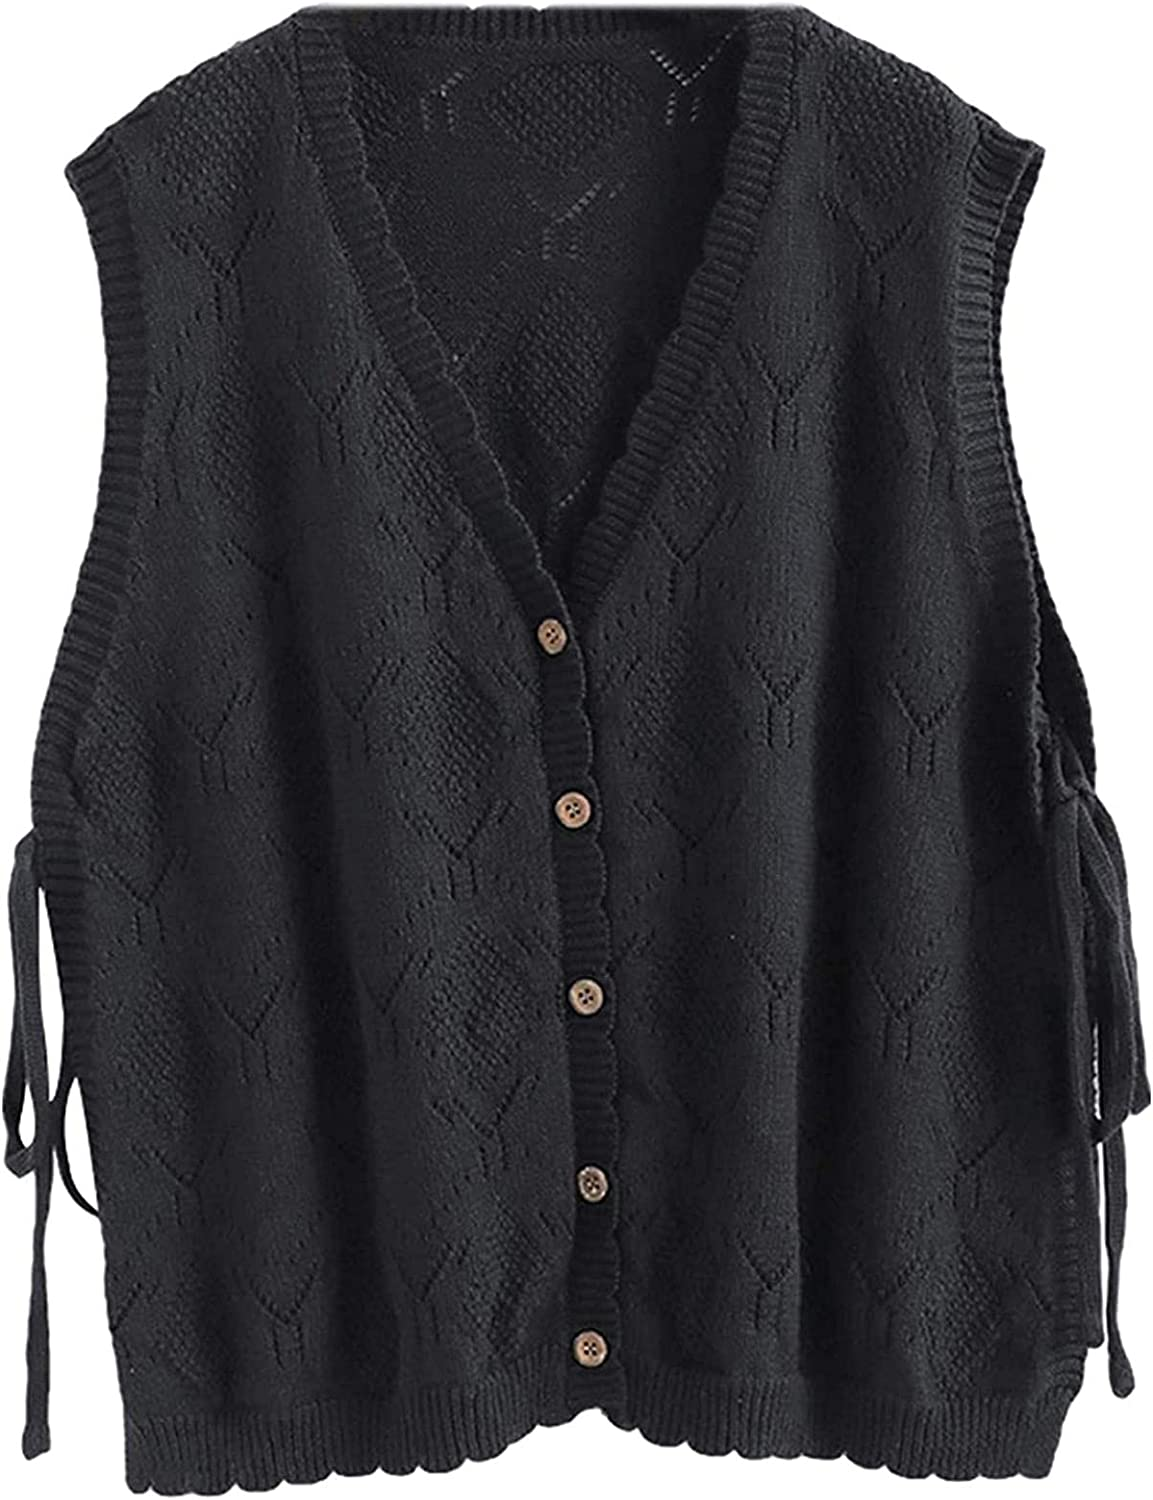 AIberx Women's Relaxed Fit Knitted V Neck Button Down Sleeveless Sweater Vest